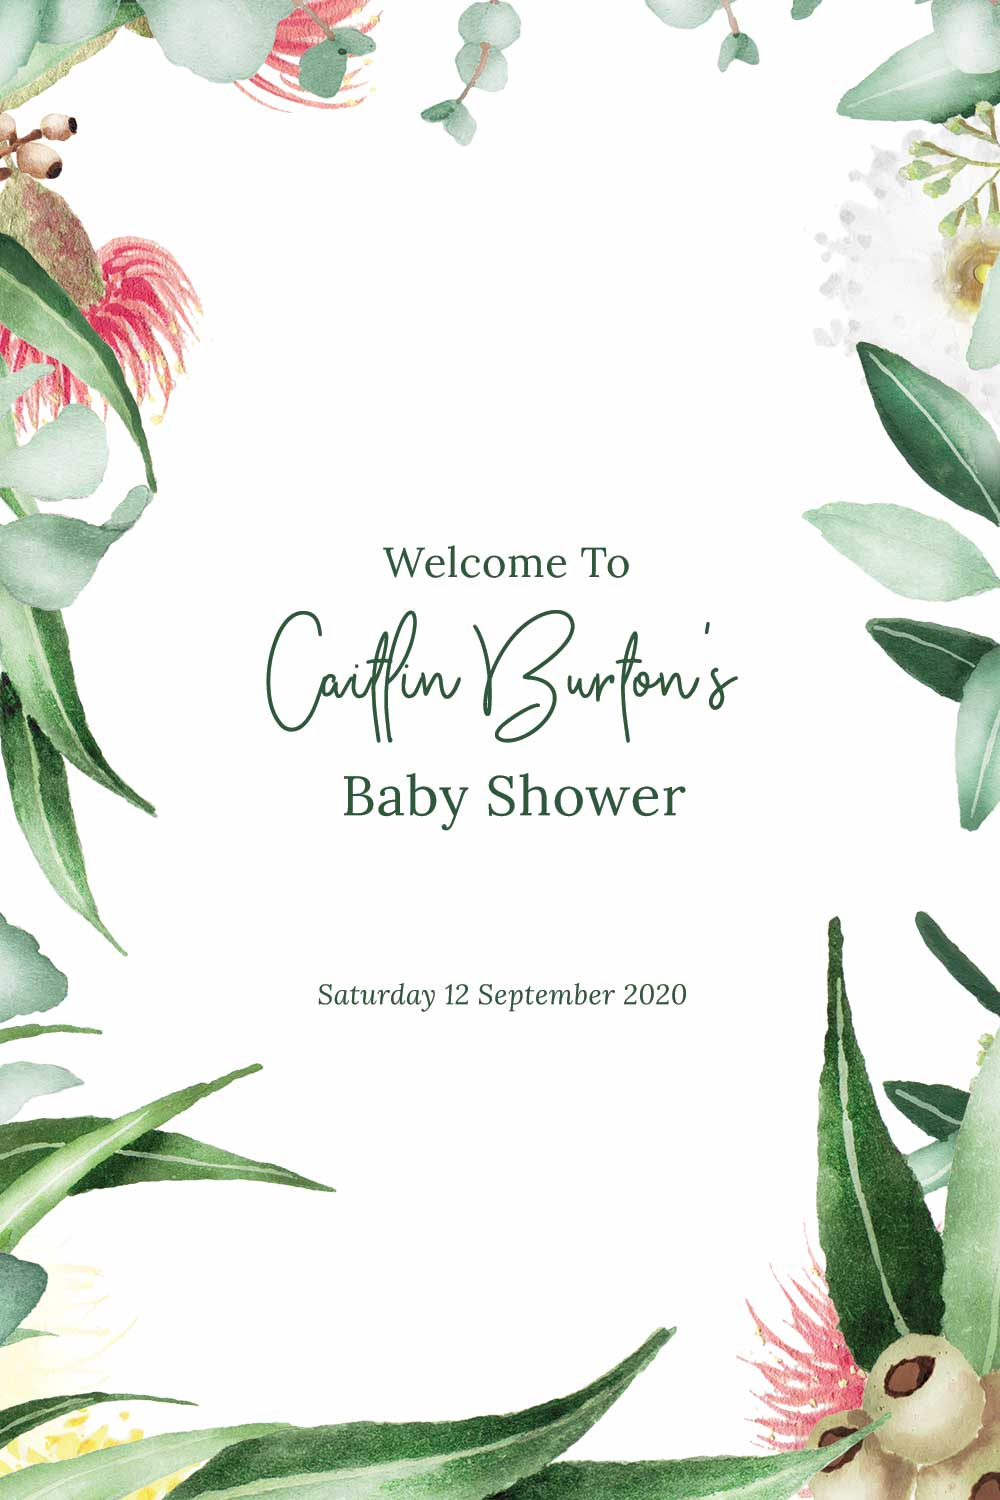 Baby Shower Welcome signs - Gum nut Theme